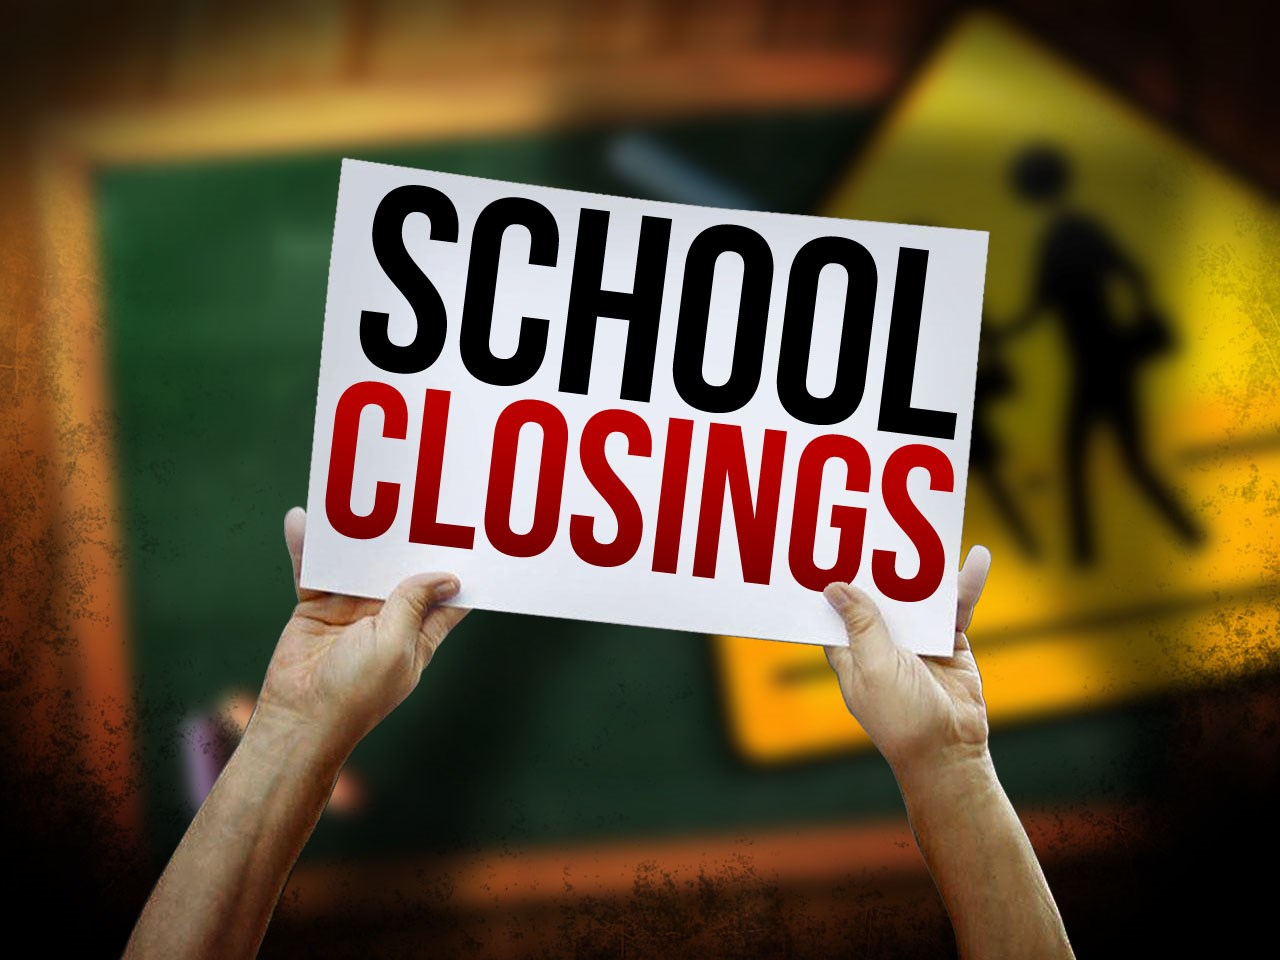 Floyd and Pulaski County Schools dismiss early